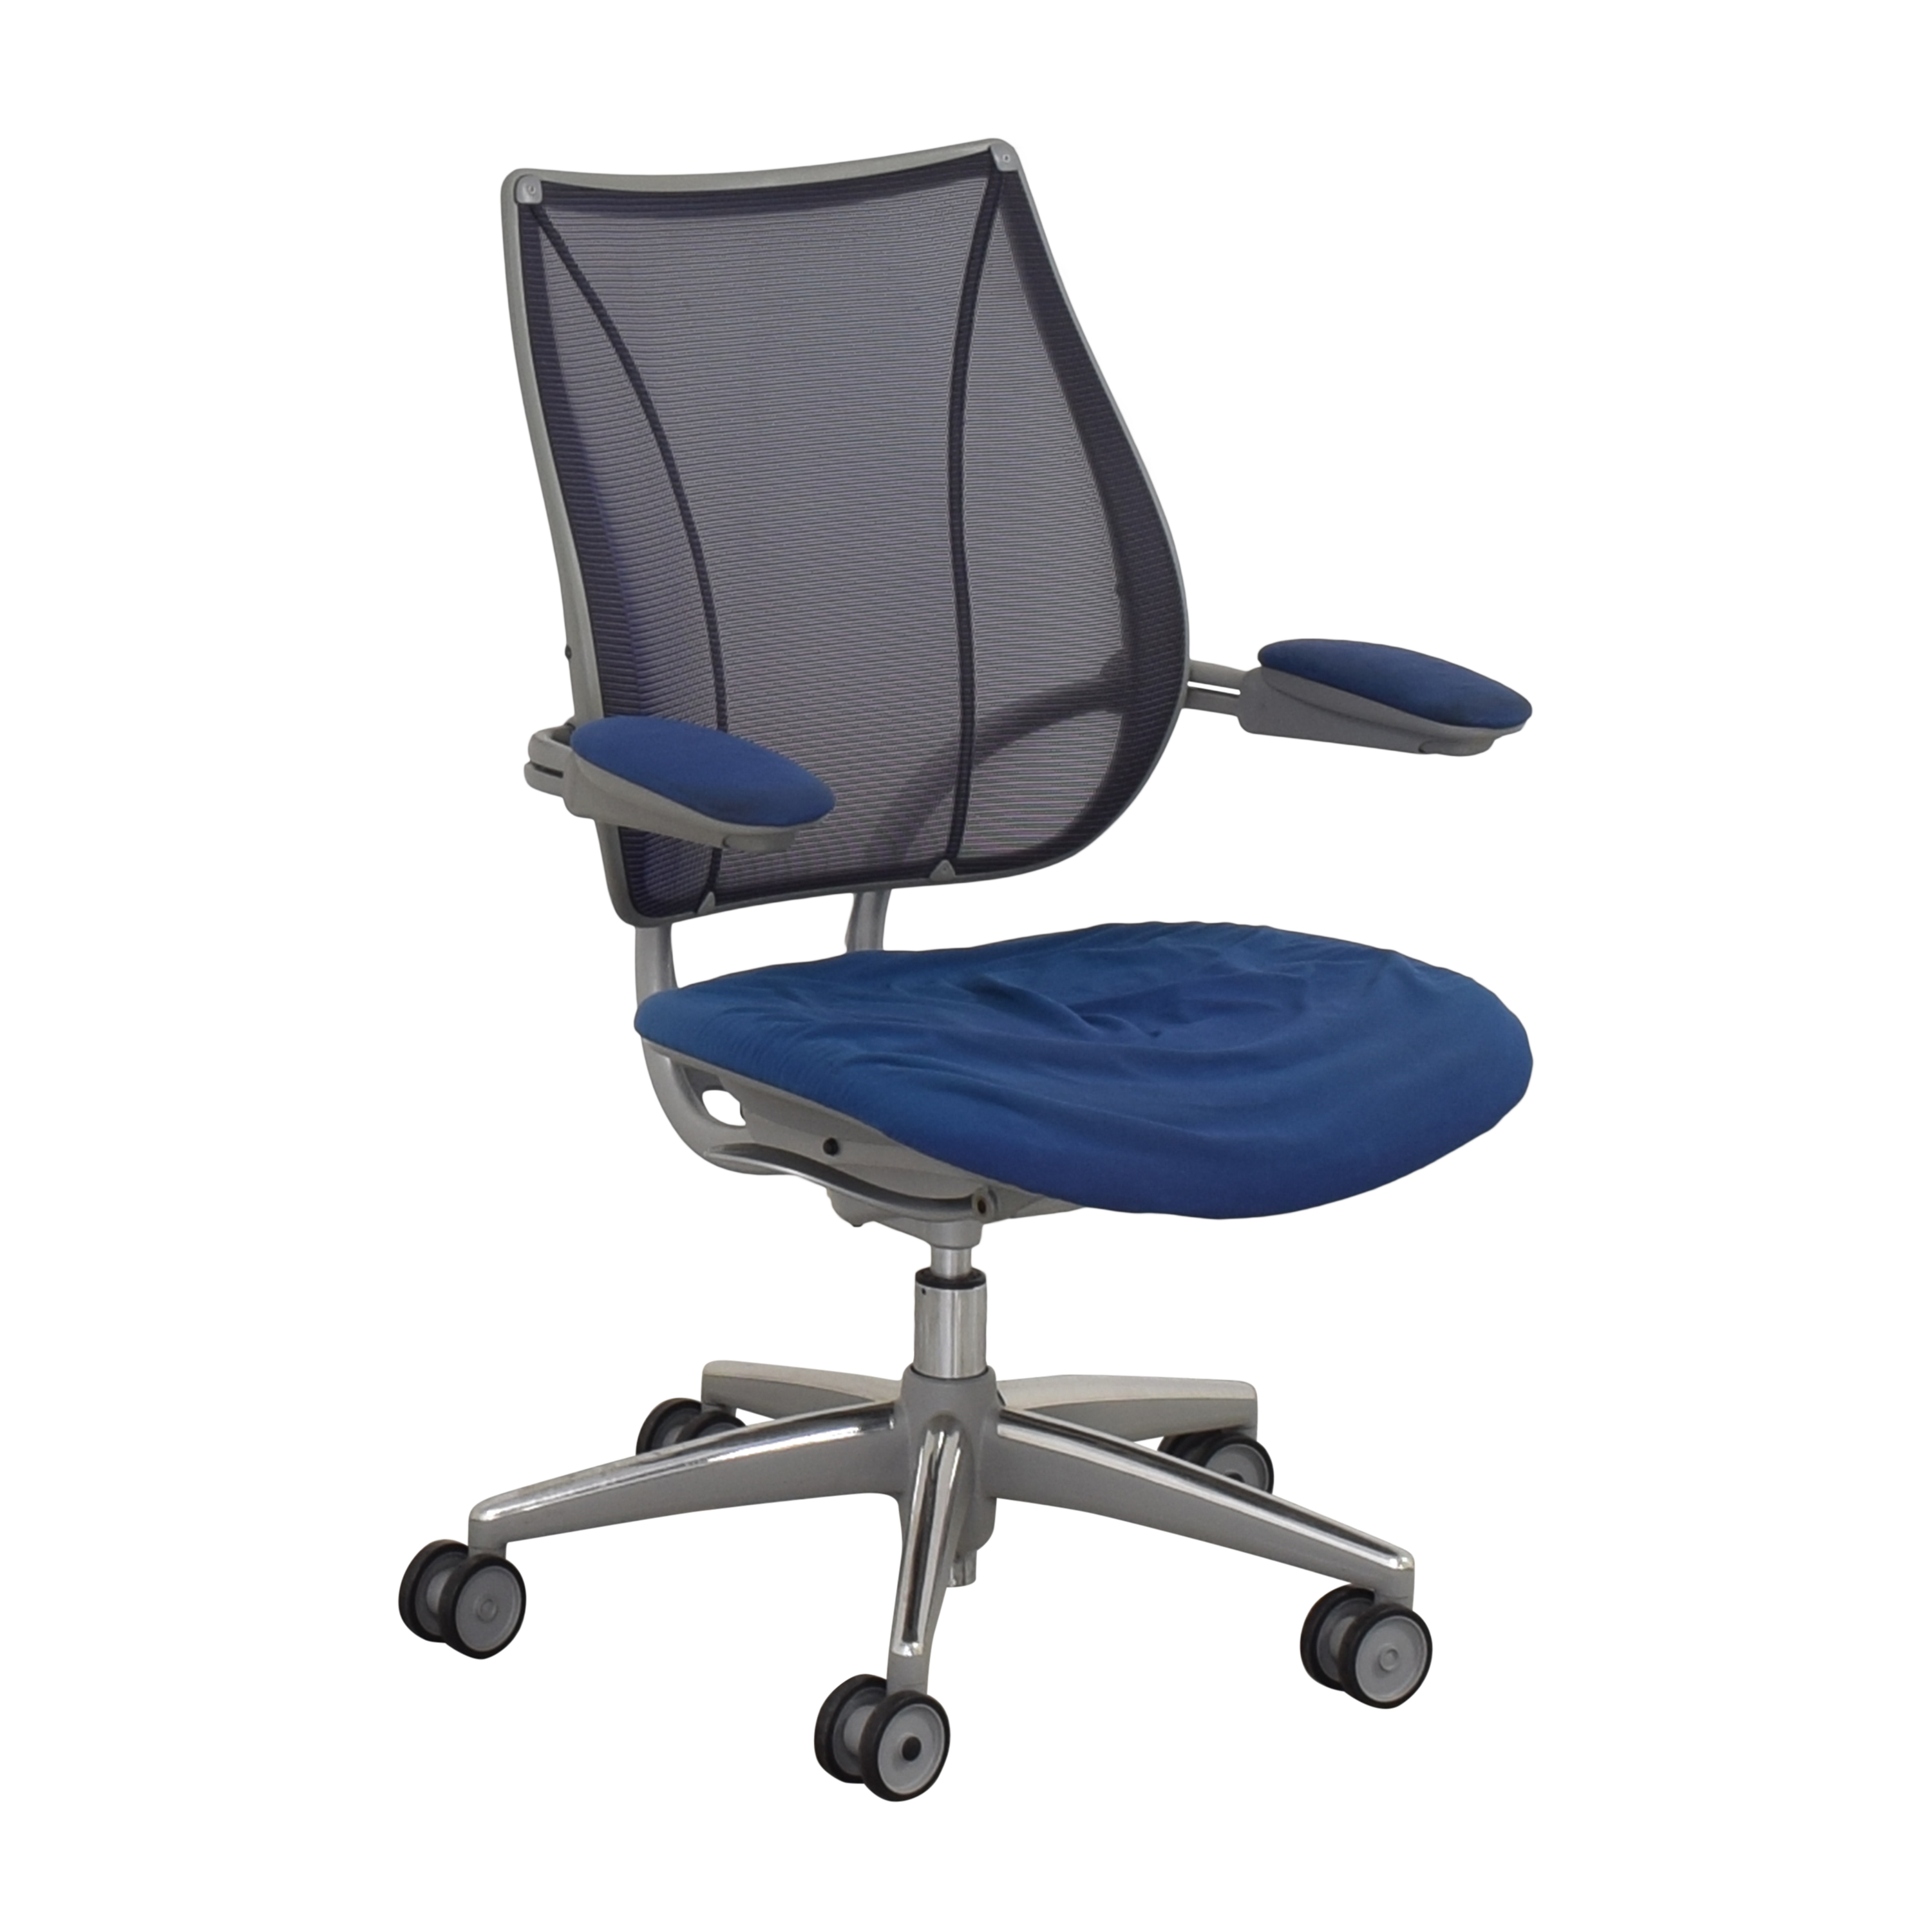 Humanscale Humanscale Liberty Swivel Chair blue and gray